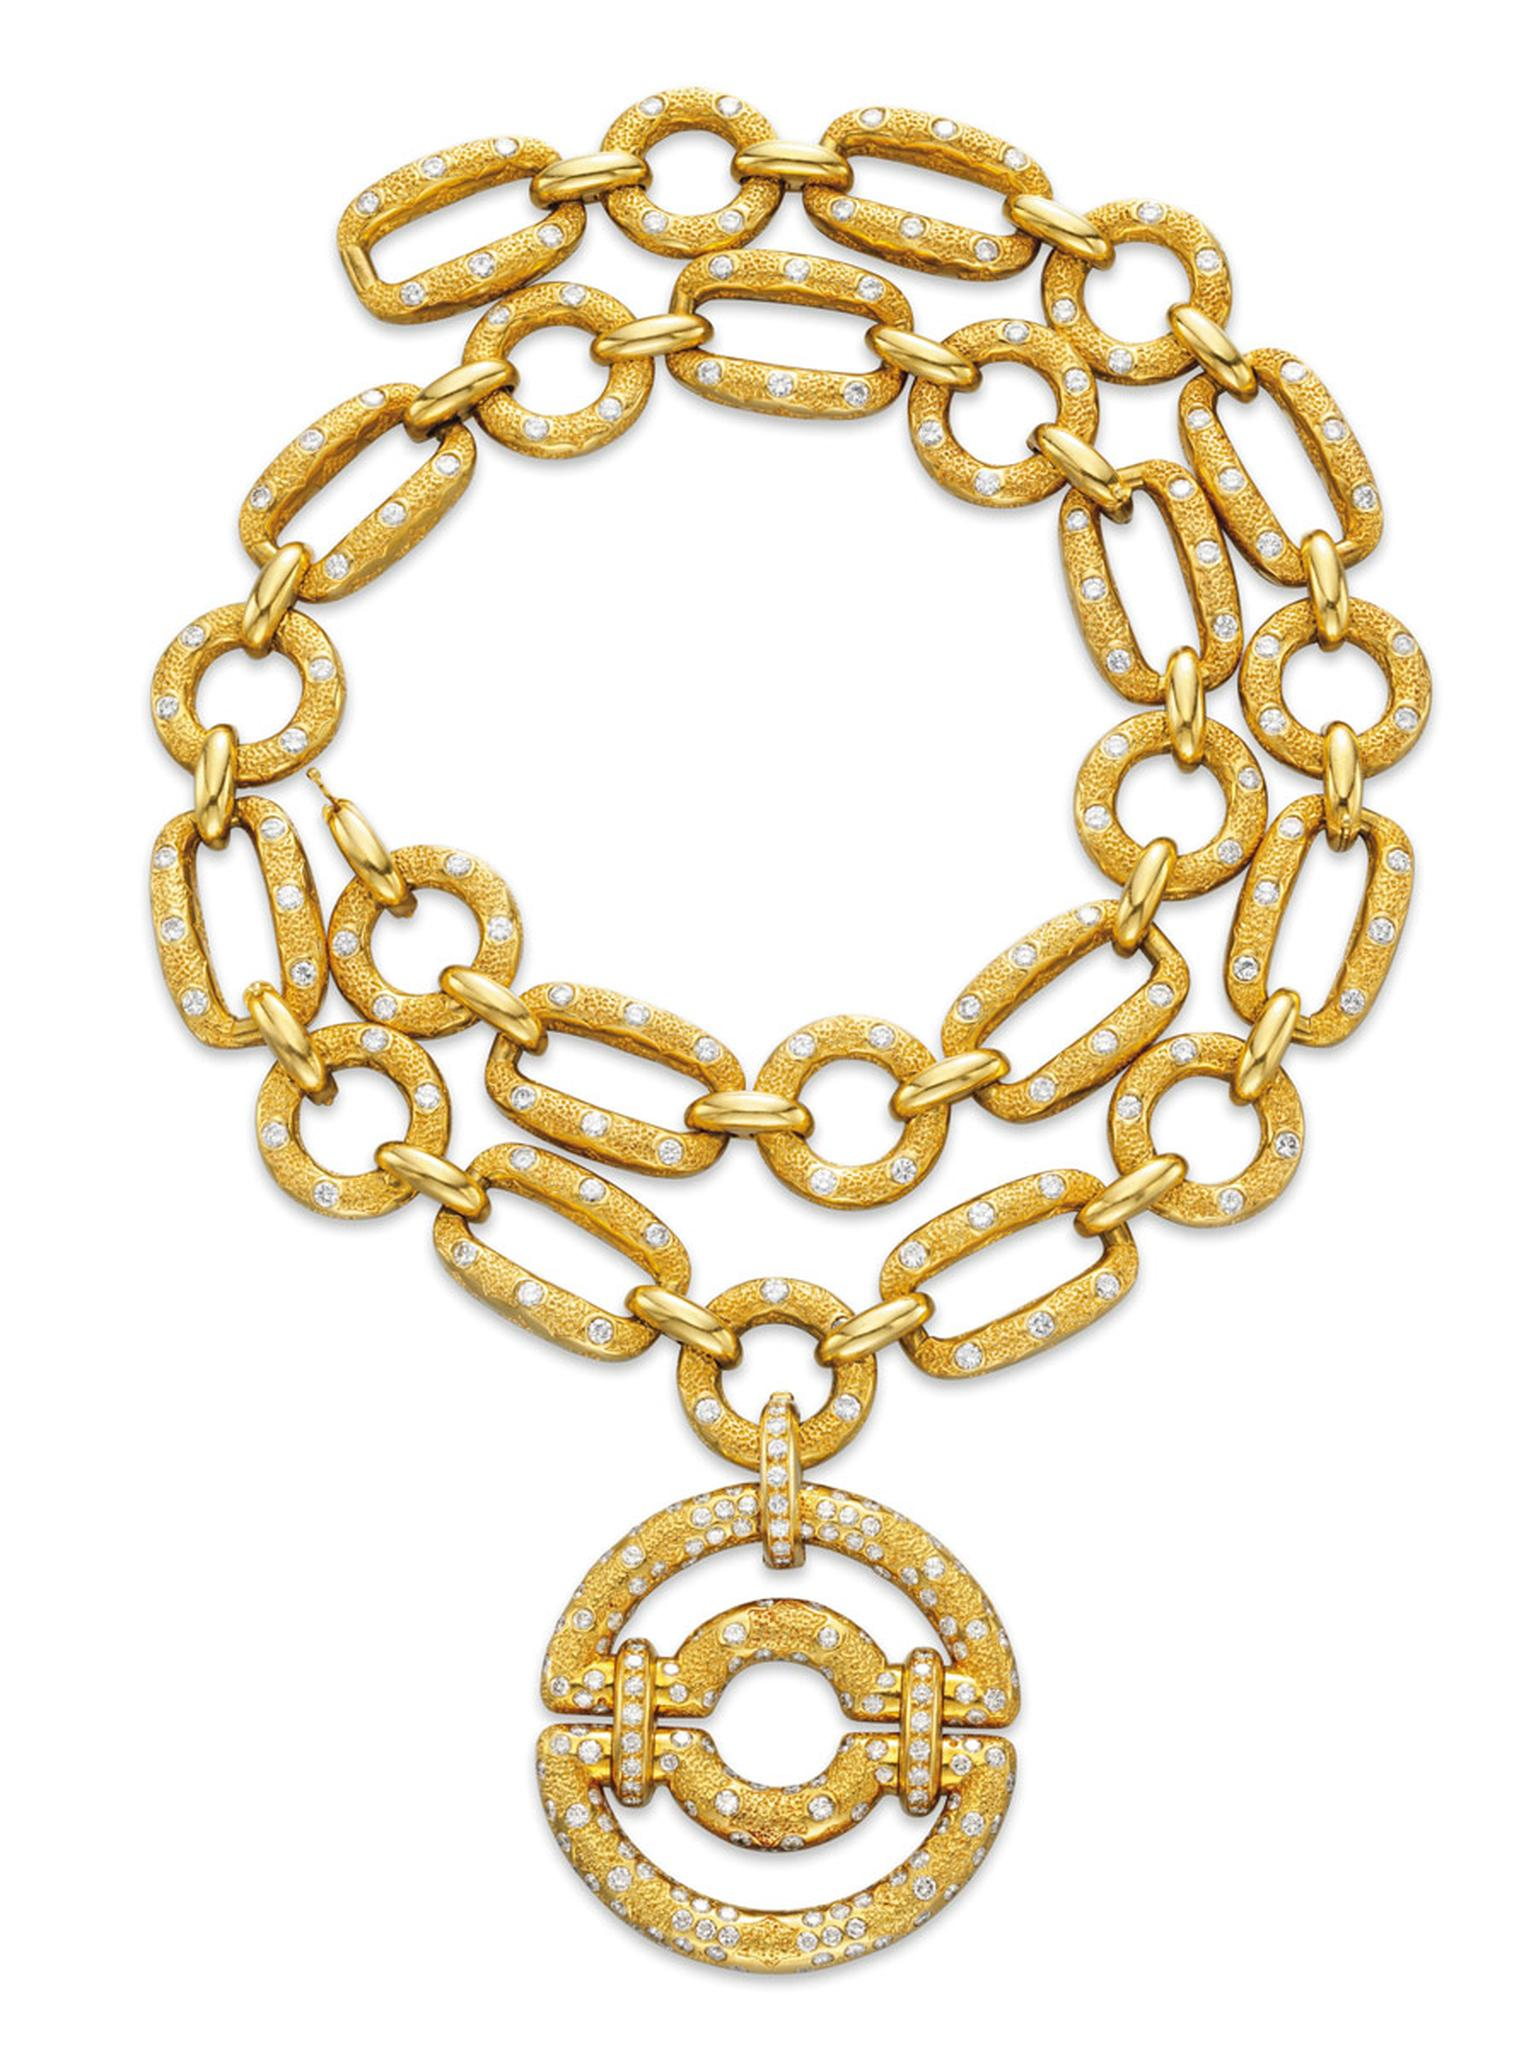 Van-Cleef-Arpels-Sevres-necklace.jpg